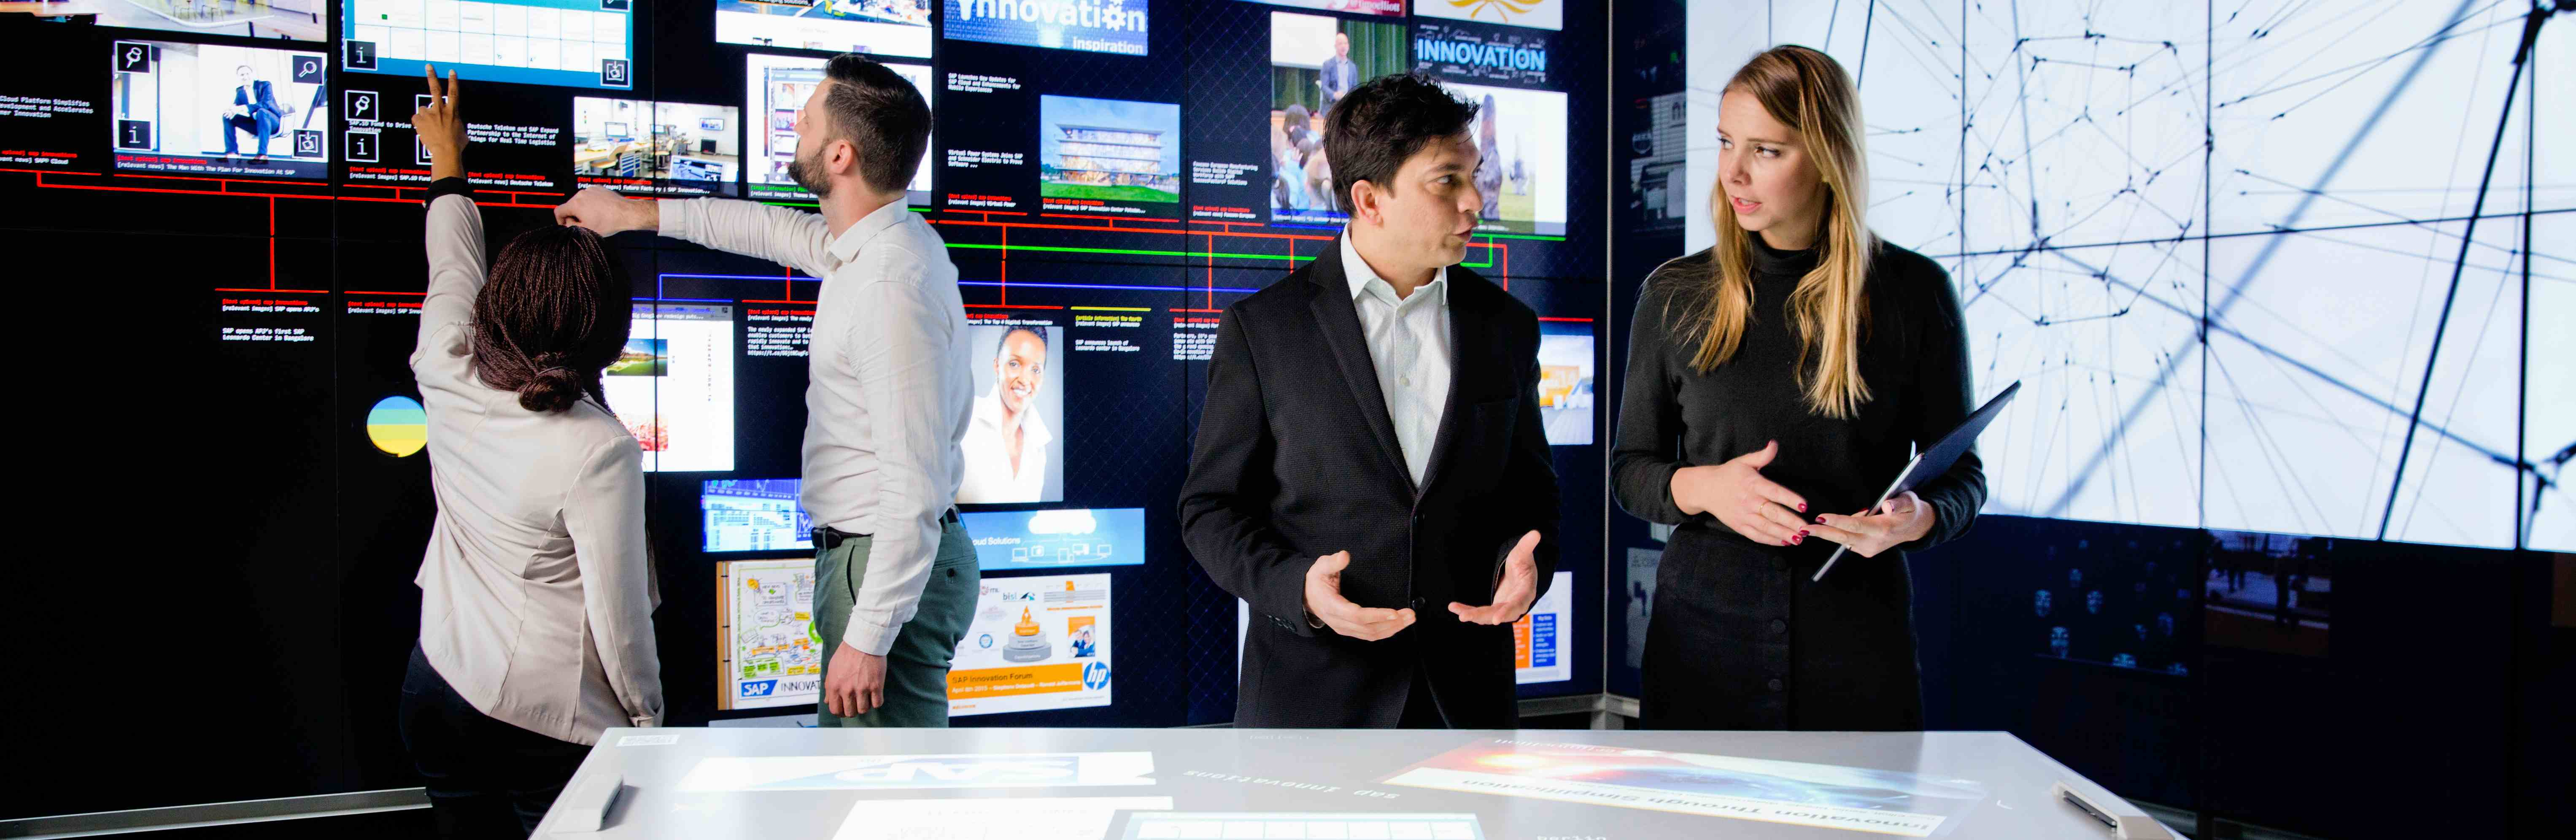 Photo of young people discussing in a high-tech lab